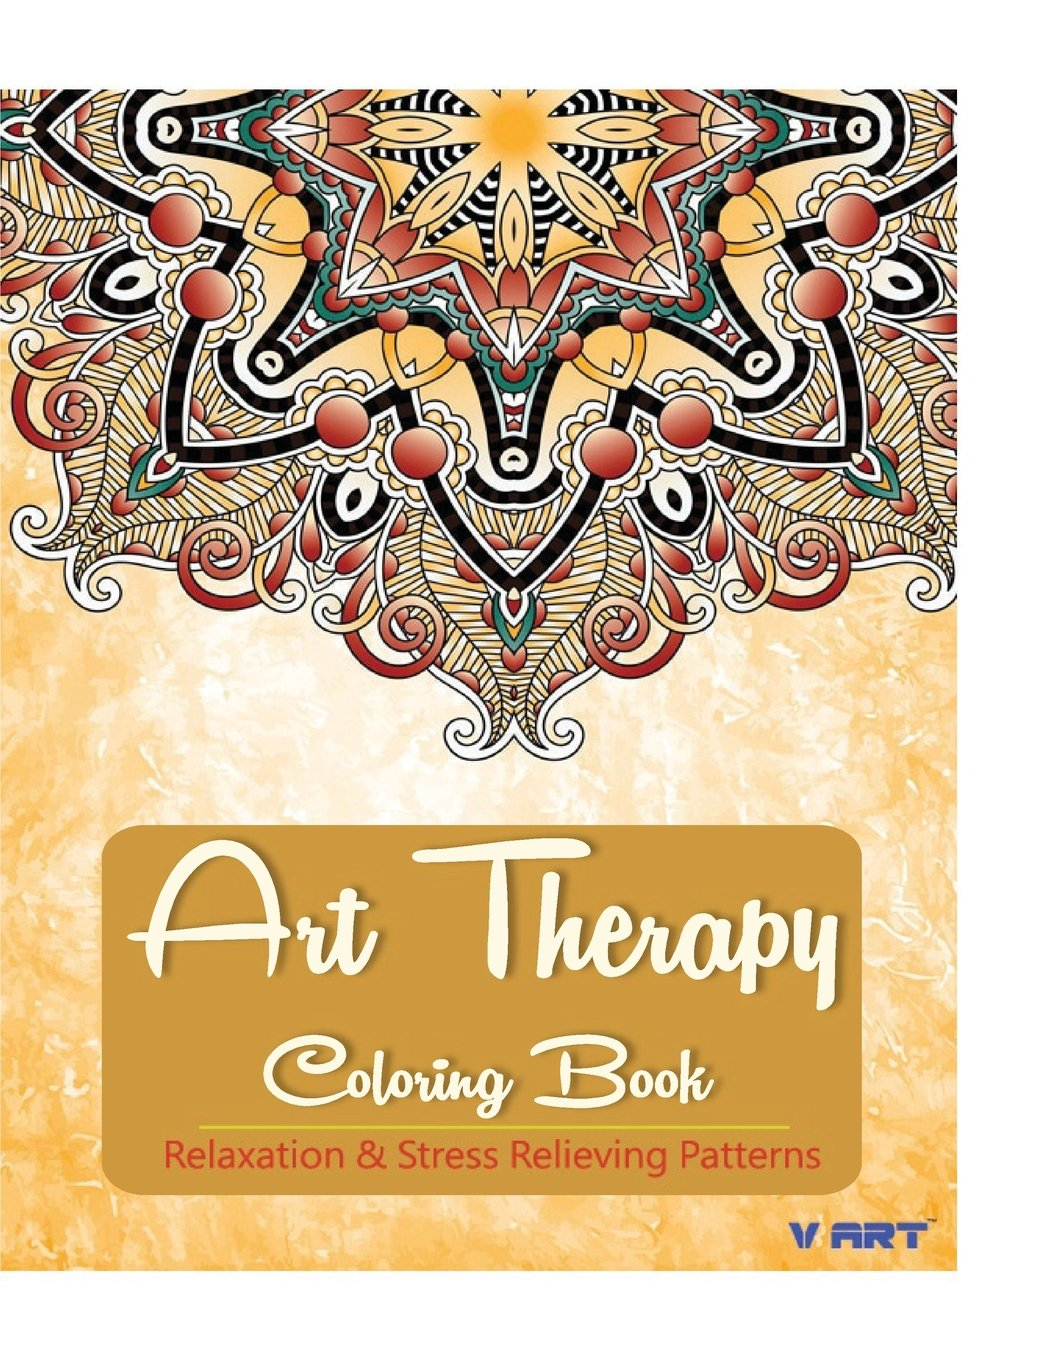 Art Therapy Coloring Book: Art Therapy Coloring Books for Adults : Stress Relieving Patterns (Volume 7) PDF